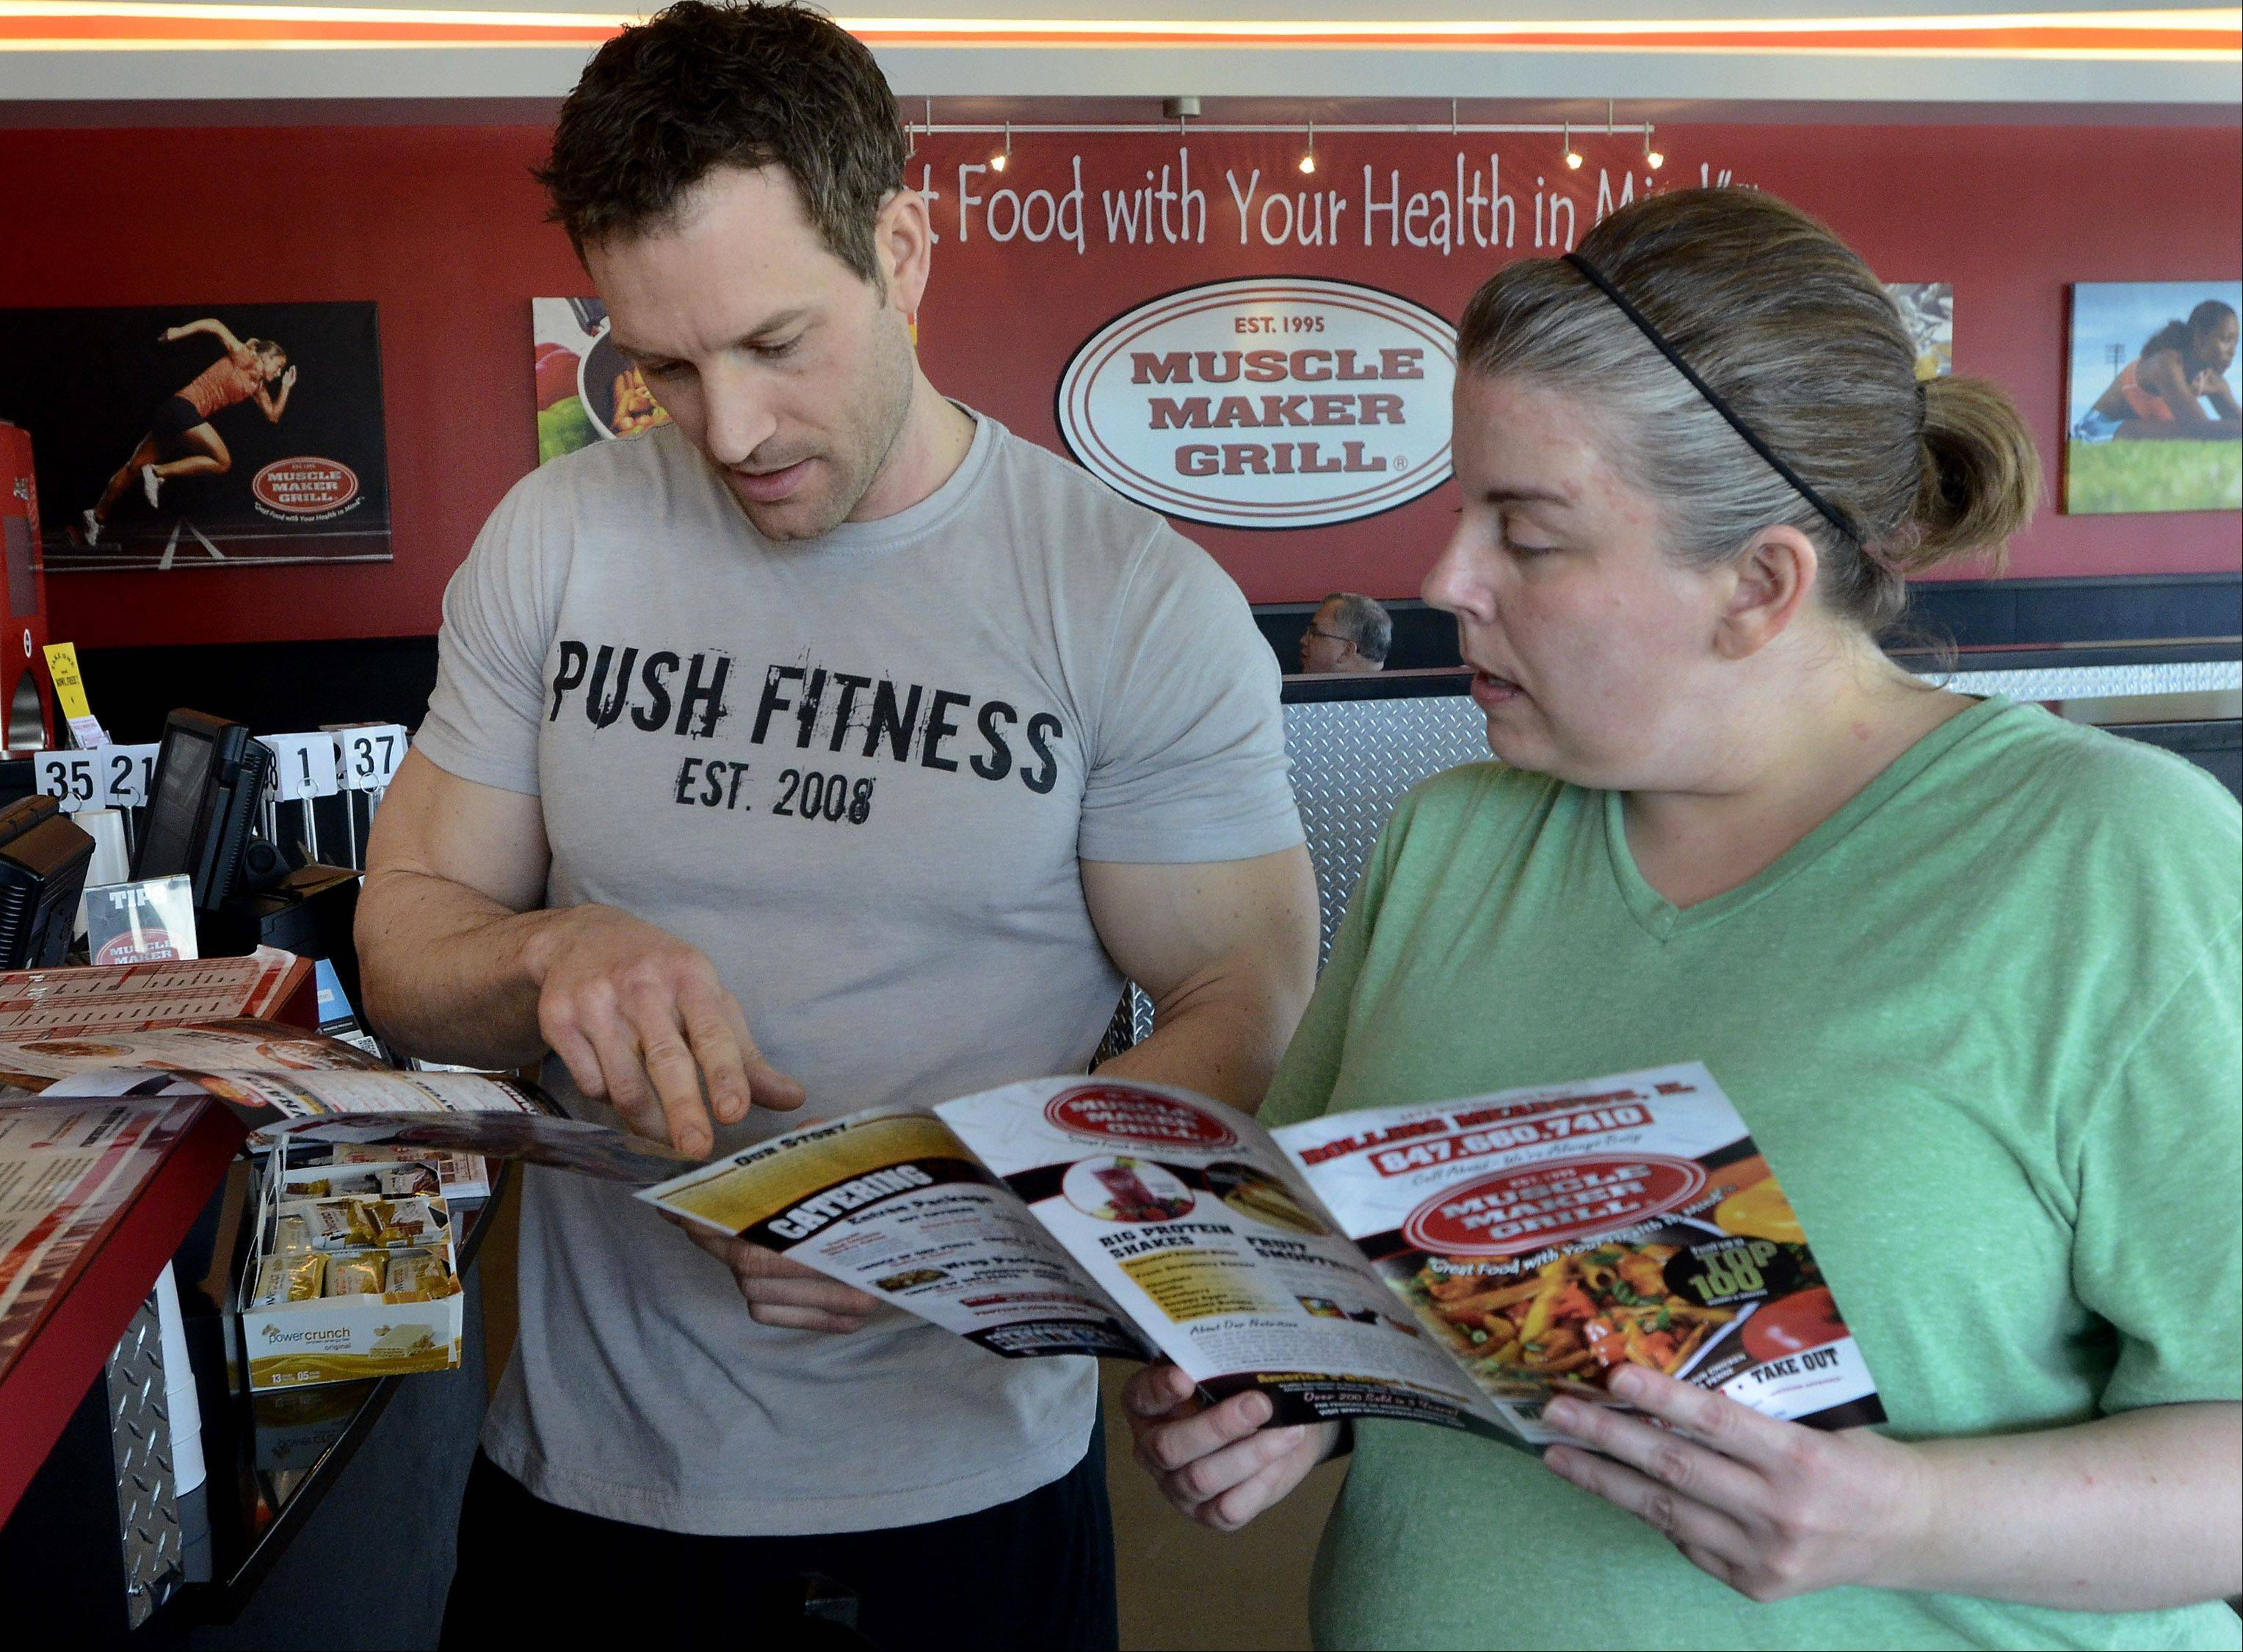 Joshua Steckler helps Melynda Findlay navigate the menu at Muscle Maker Grill in Rolling Meadows.